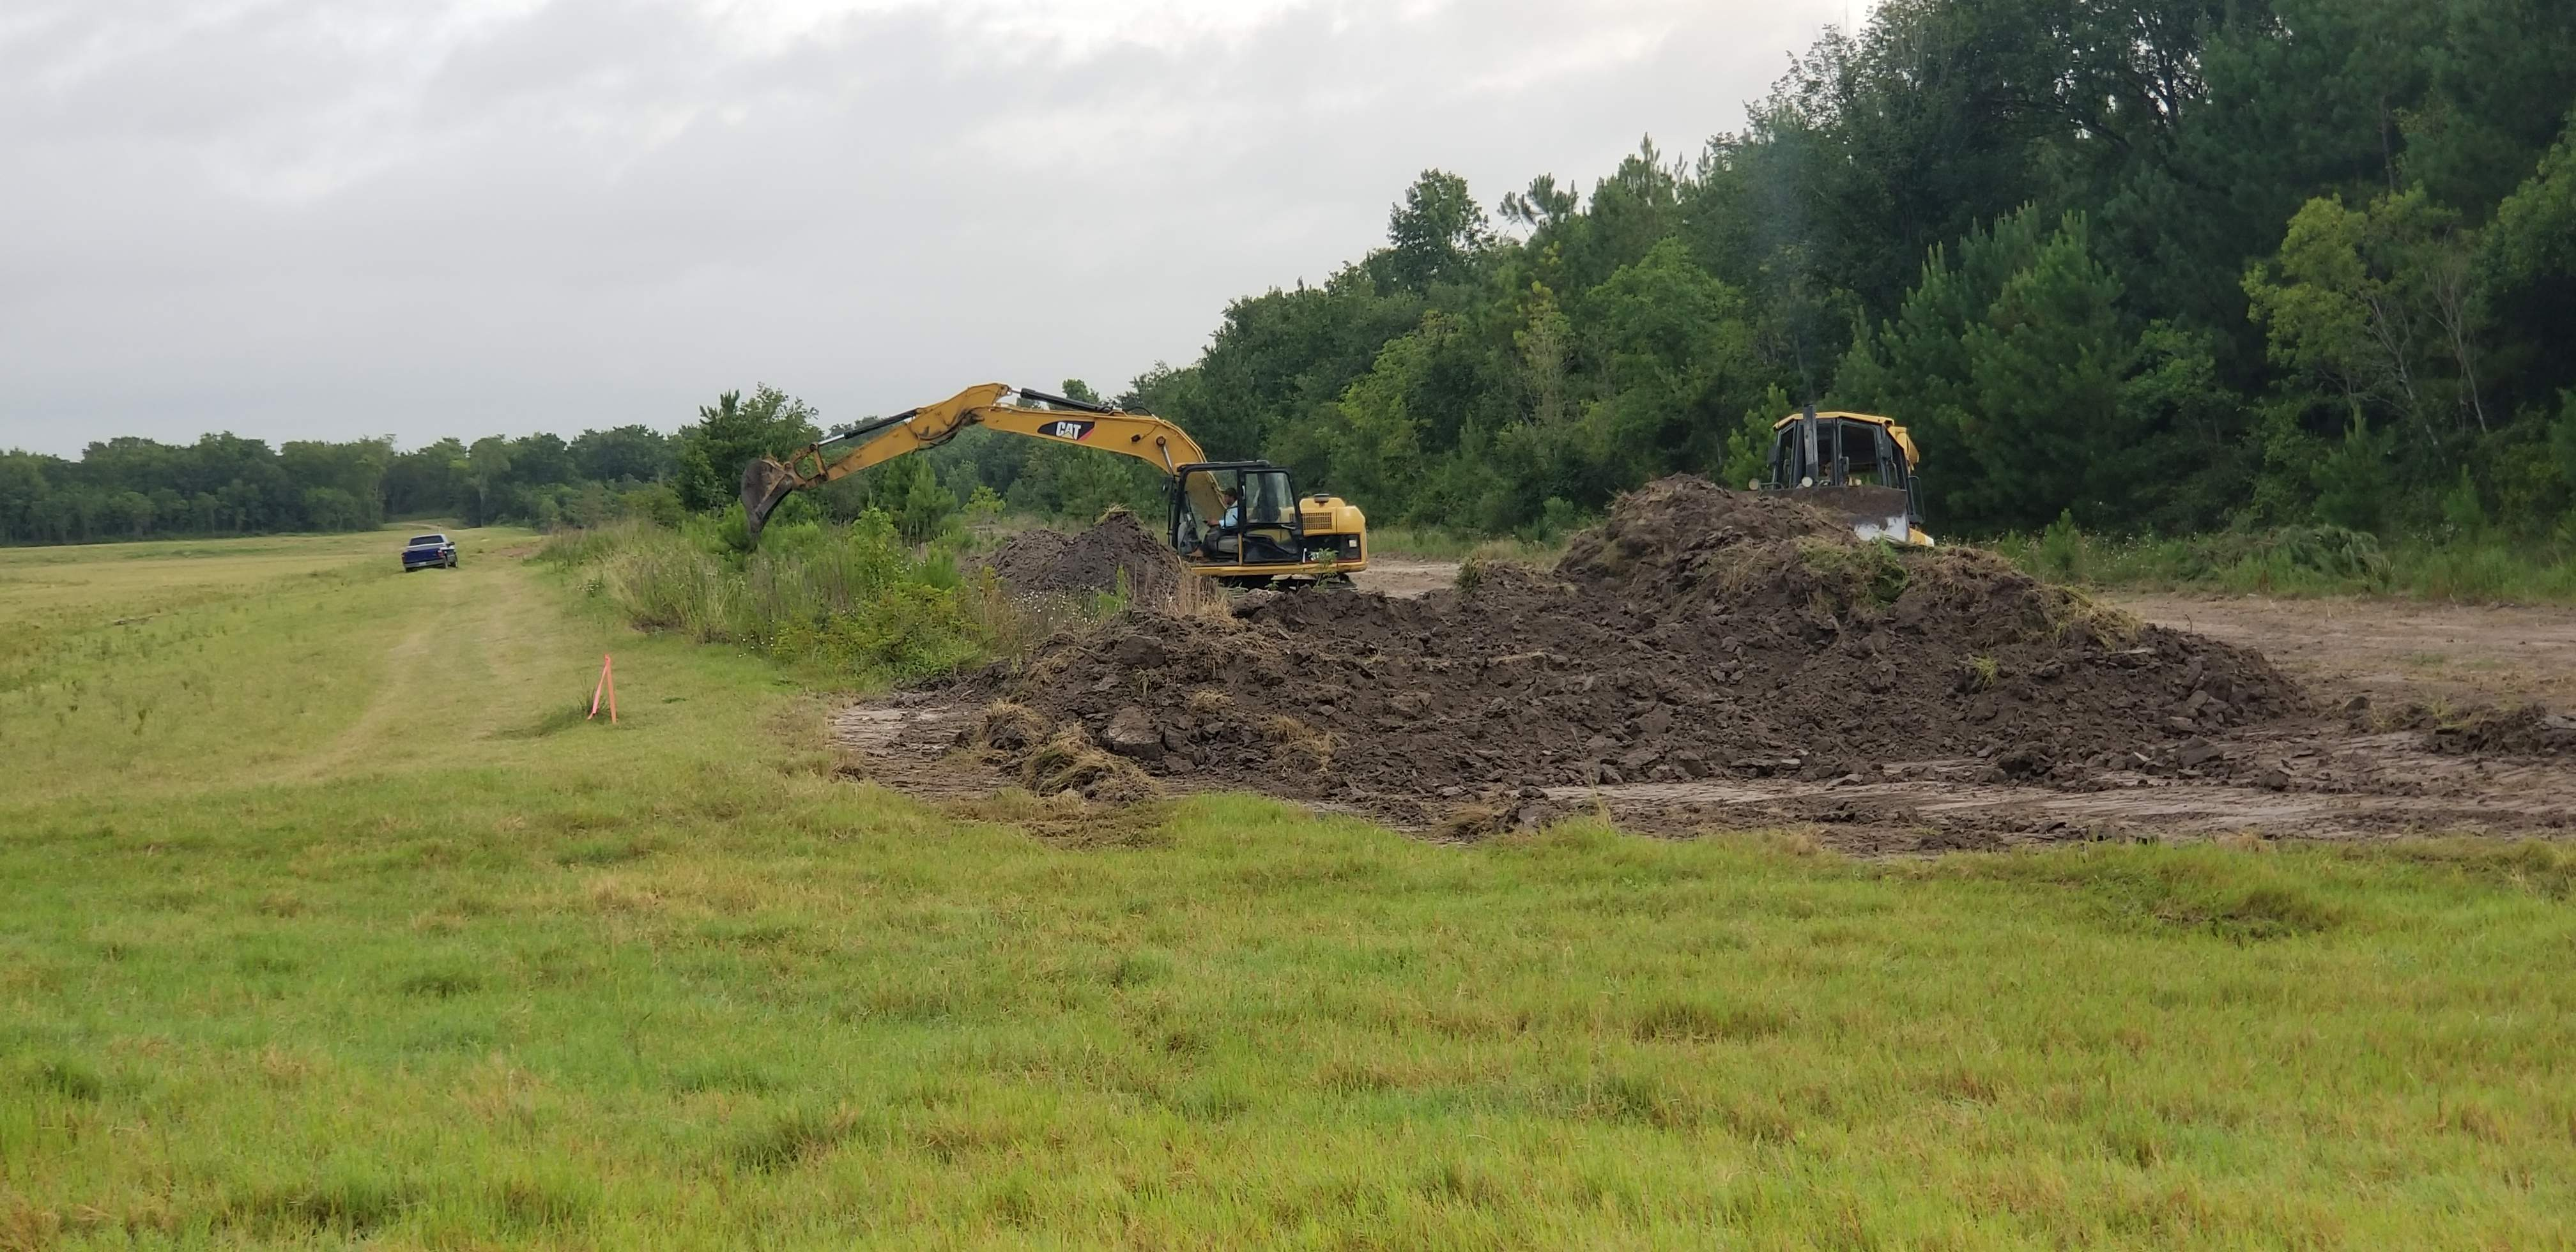 CONSTRUCTION BEGINS ON THE LAUDER STORMWATER DETENTION BASIN IN GREENS BAYOU